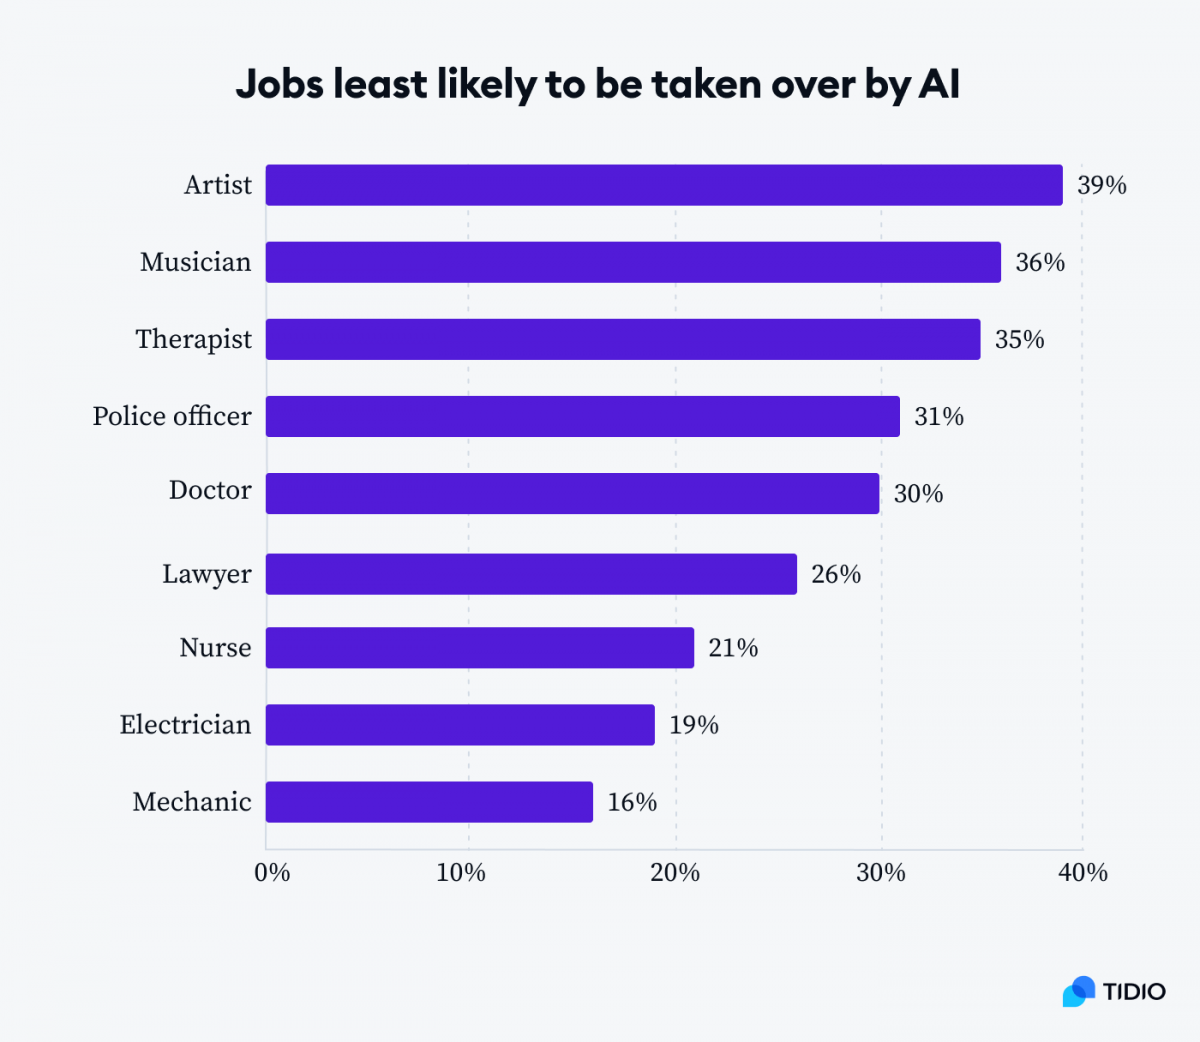 Graph presenting jobs least likely to be taken over by AI